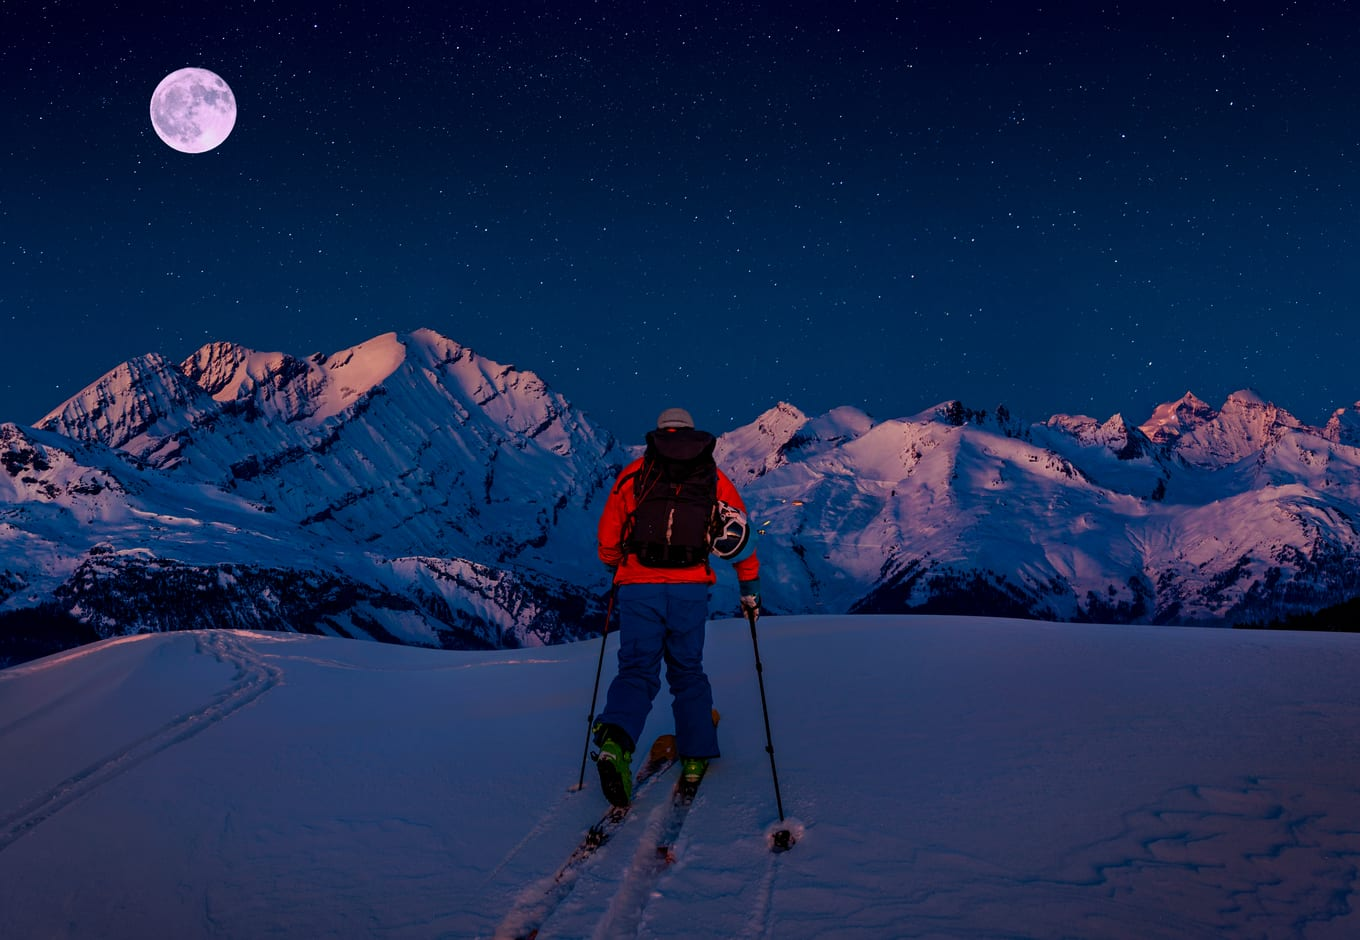 Night ski with view of the mountains and the full moon.